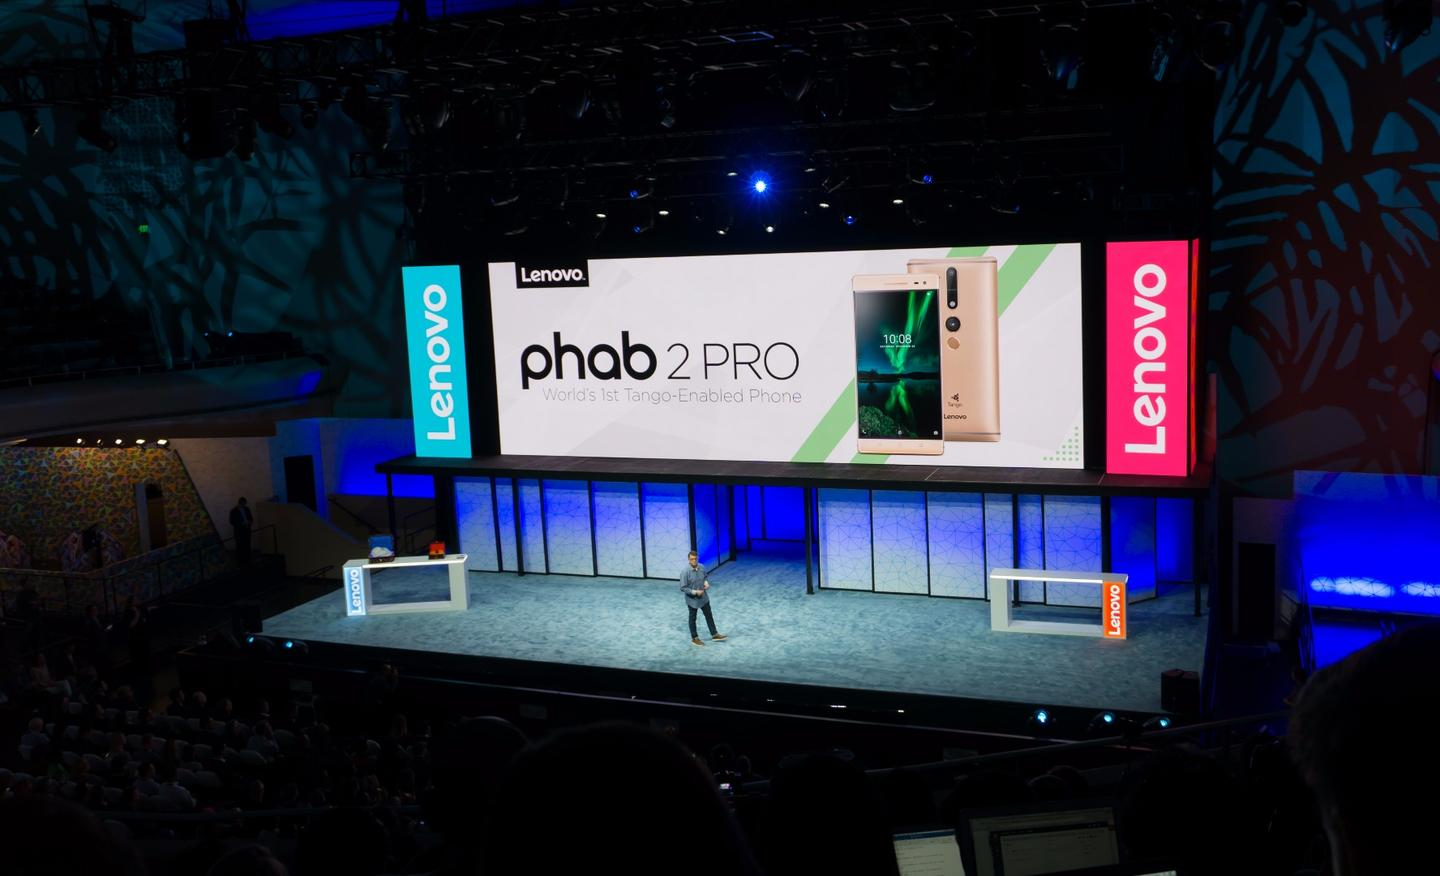 Lenovo announcing the Phab2 Pro